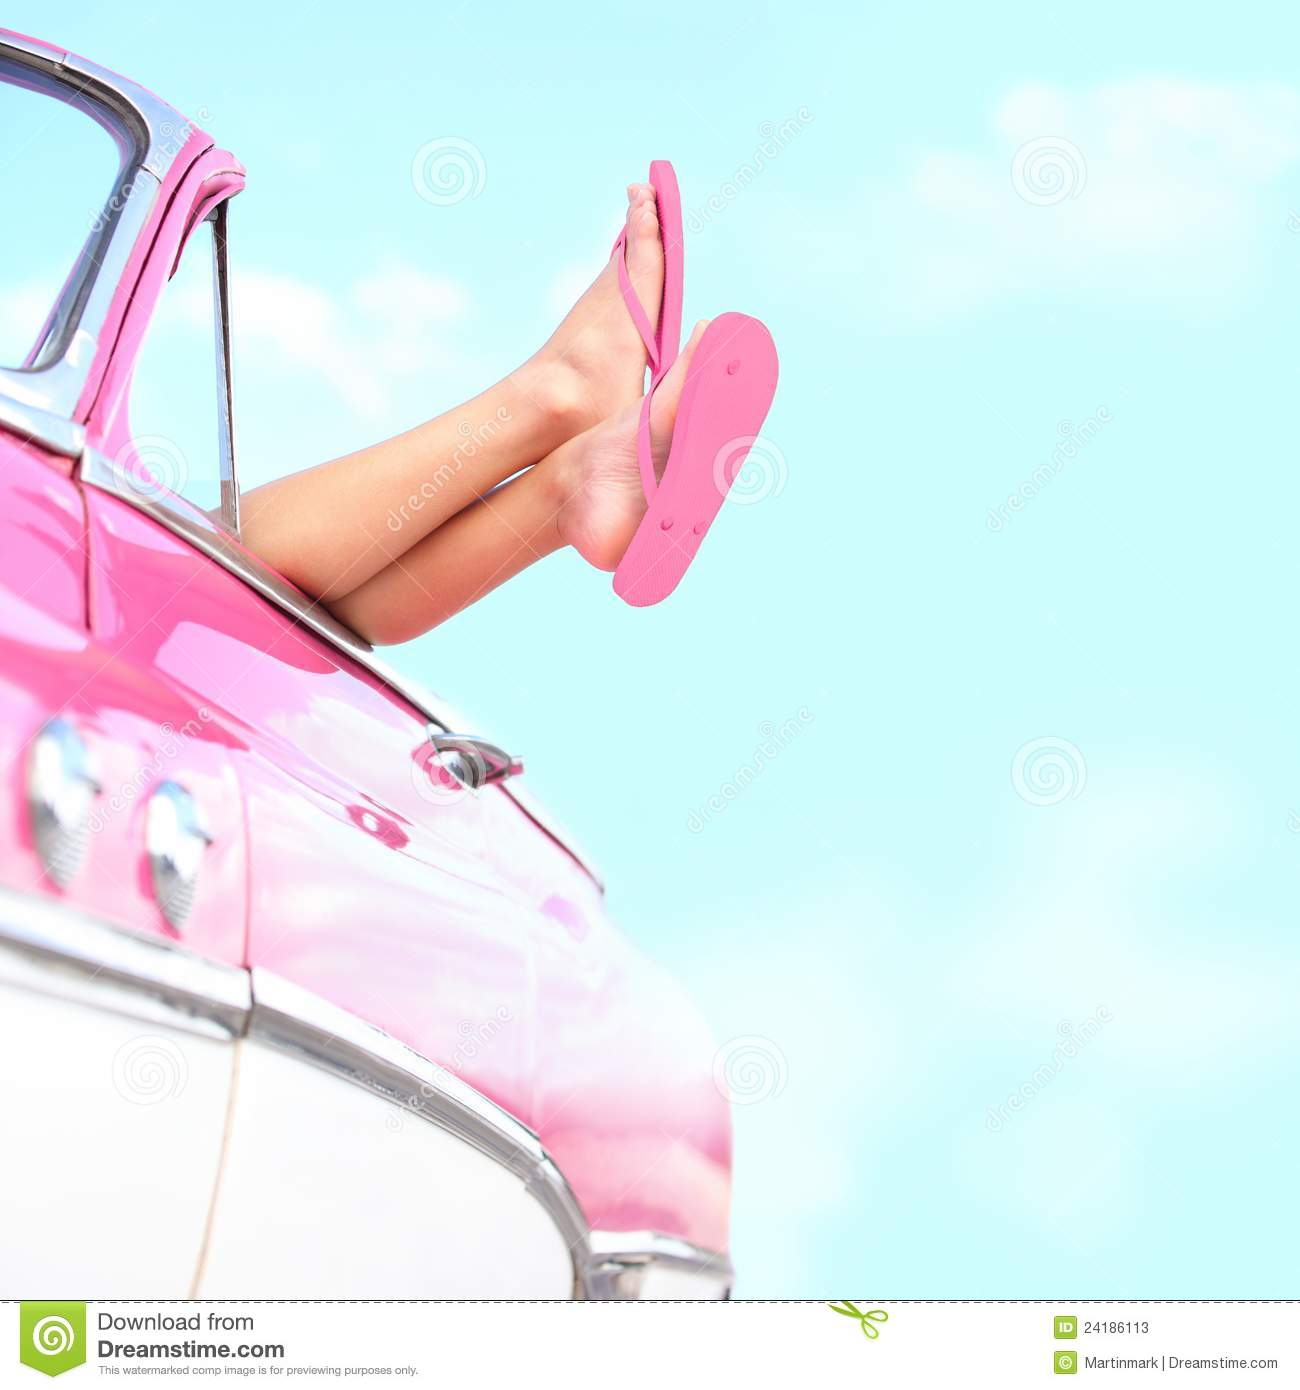 Download Summer fun vintage car stock image. Image of drive, adult - 24186113